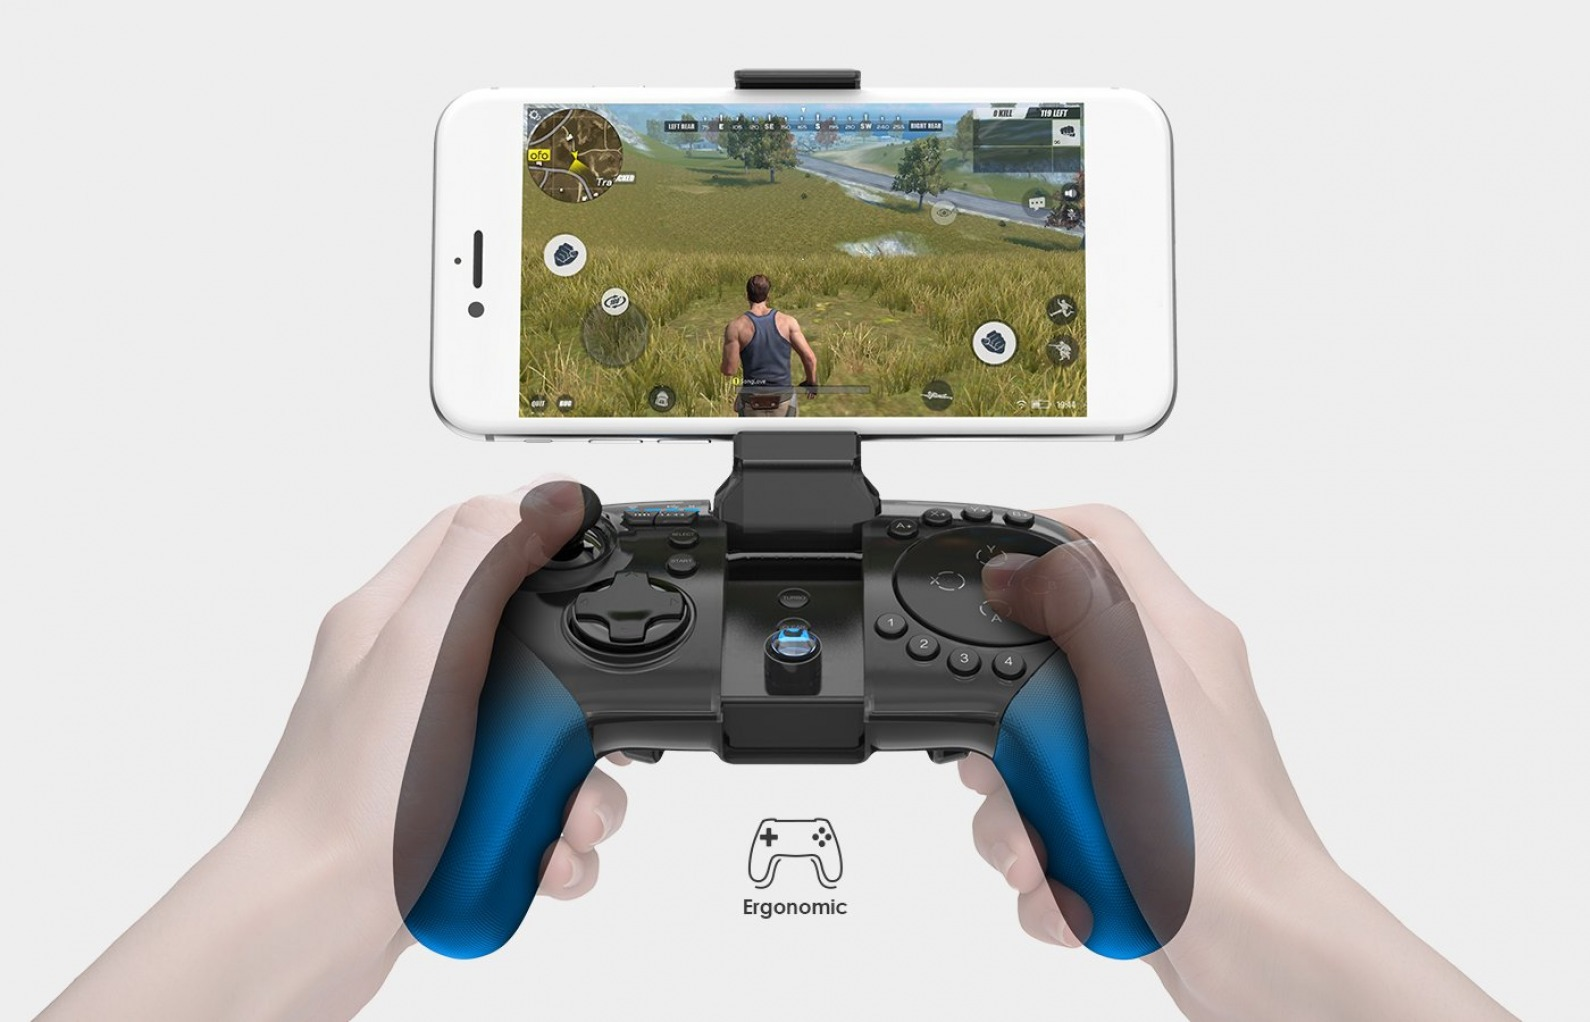 Review: GameSir G5 Mobile Game Controller for iPhone